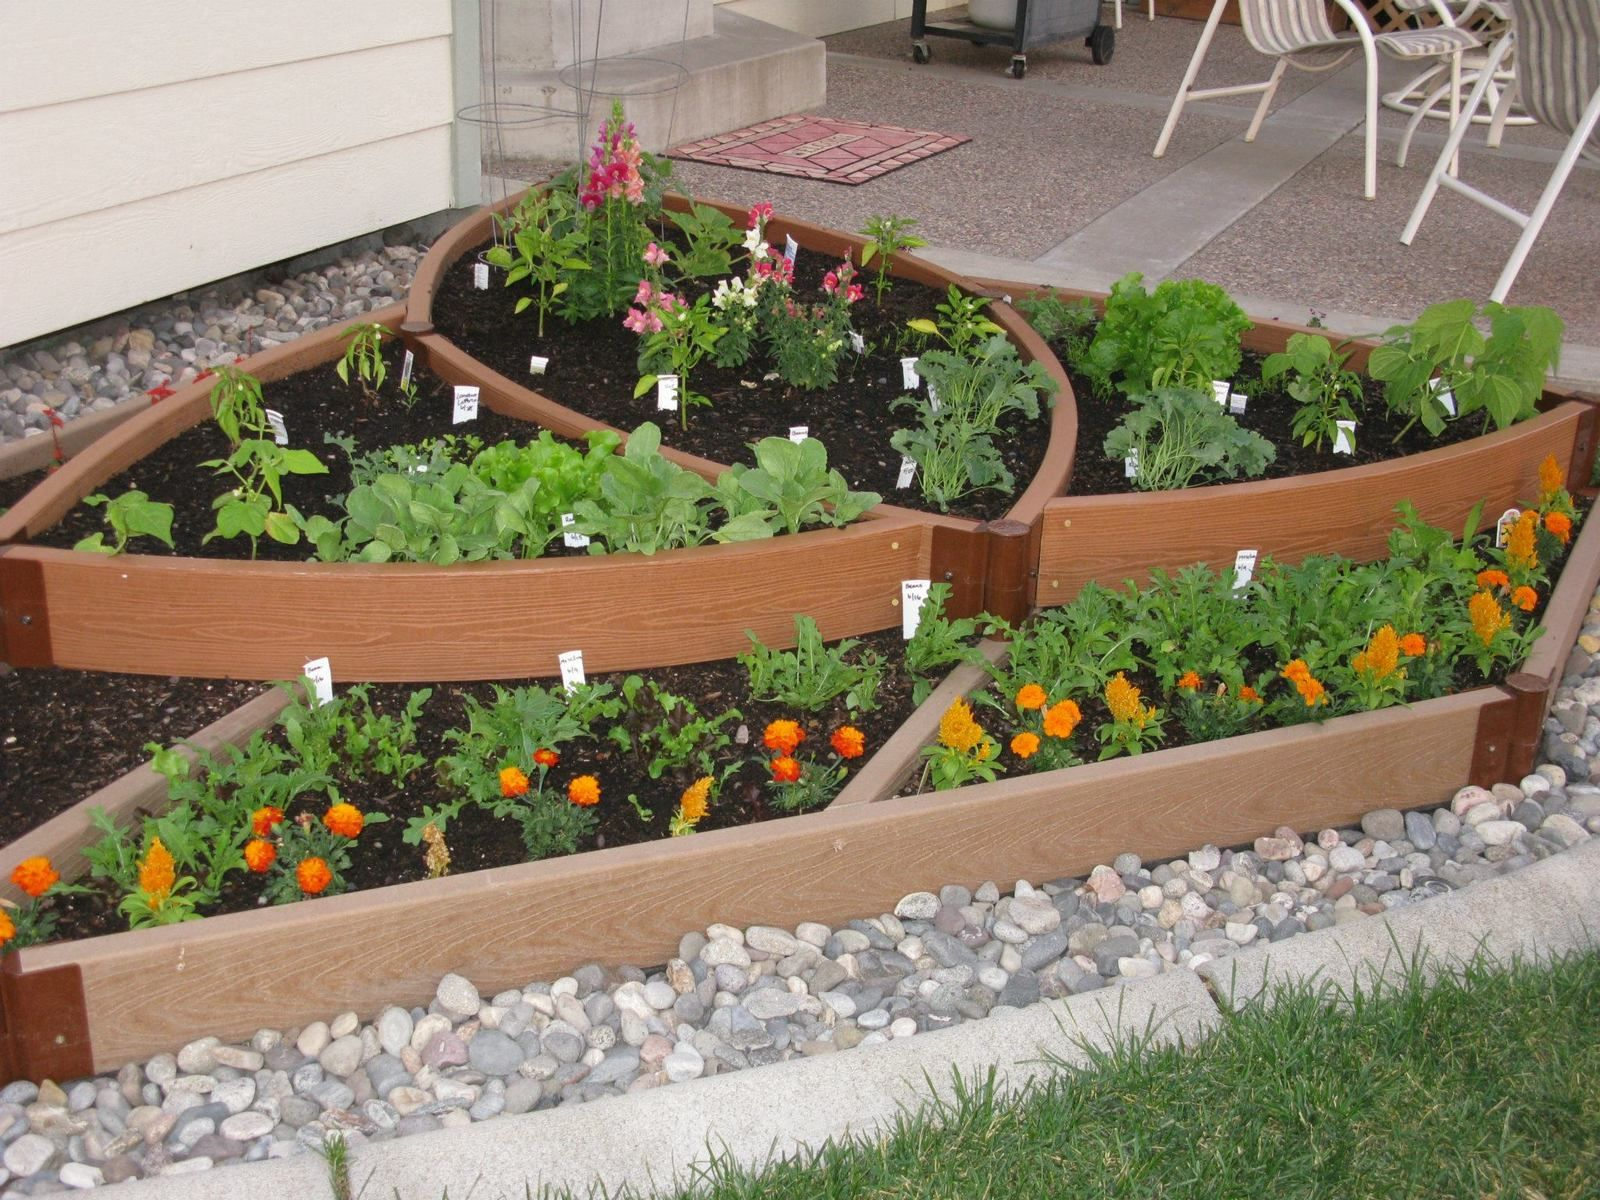 Raised garden raised garden bed kits for sale and buy for Garden design kits